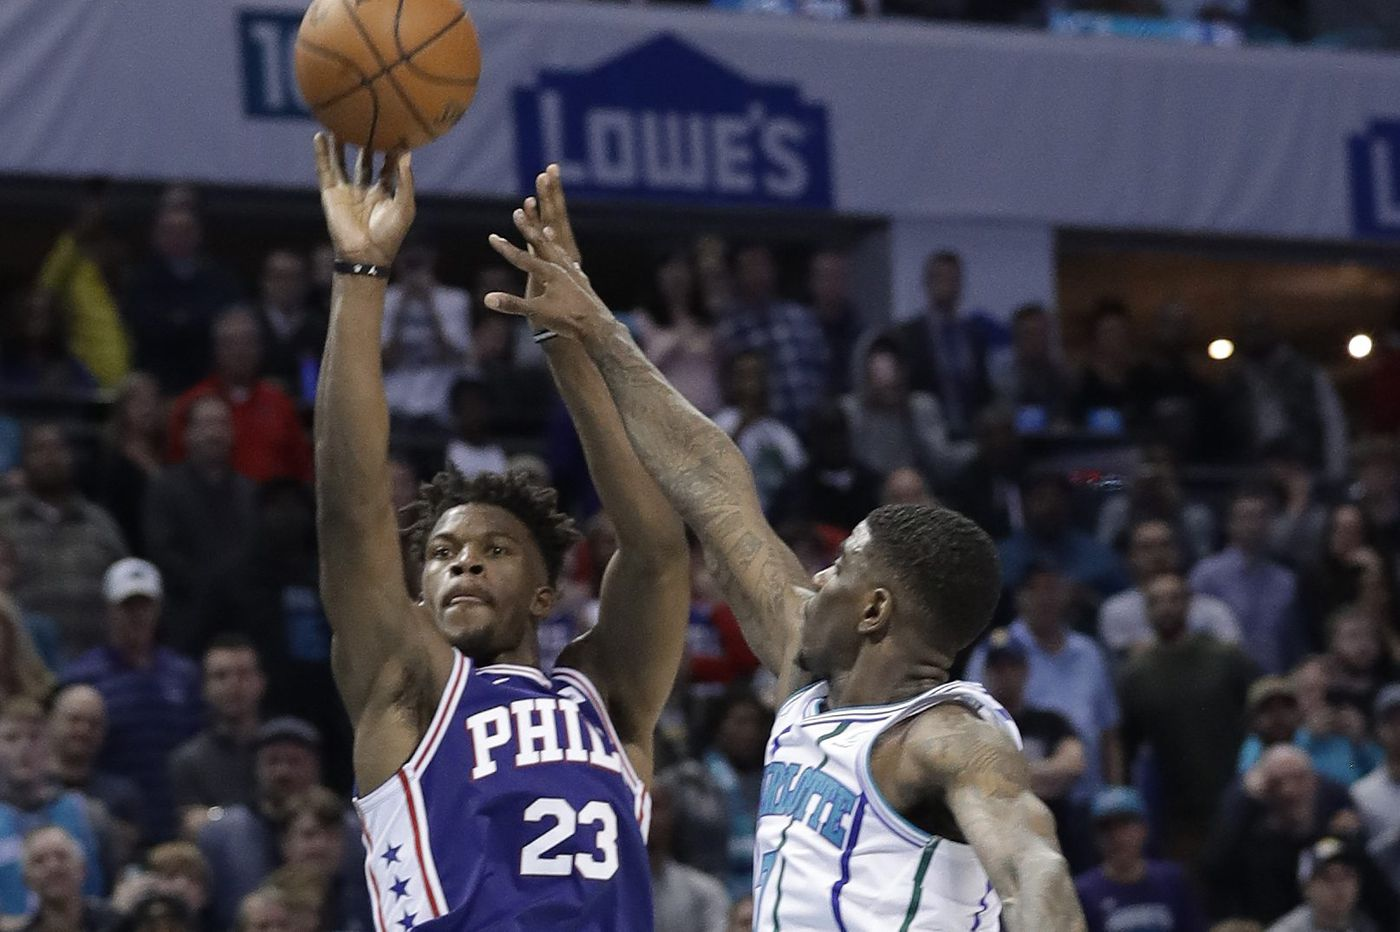 Jimmy Butler drains game-winner to lead Sixers past Hornets in overtime